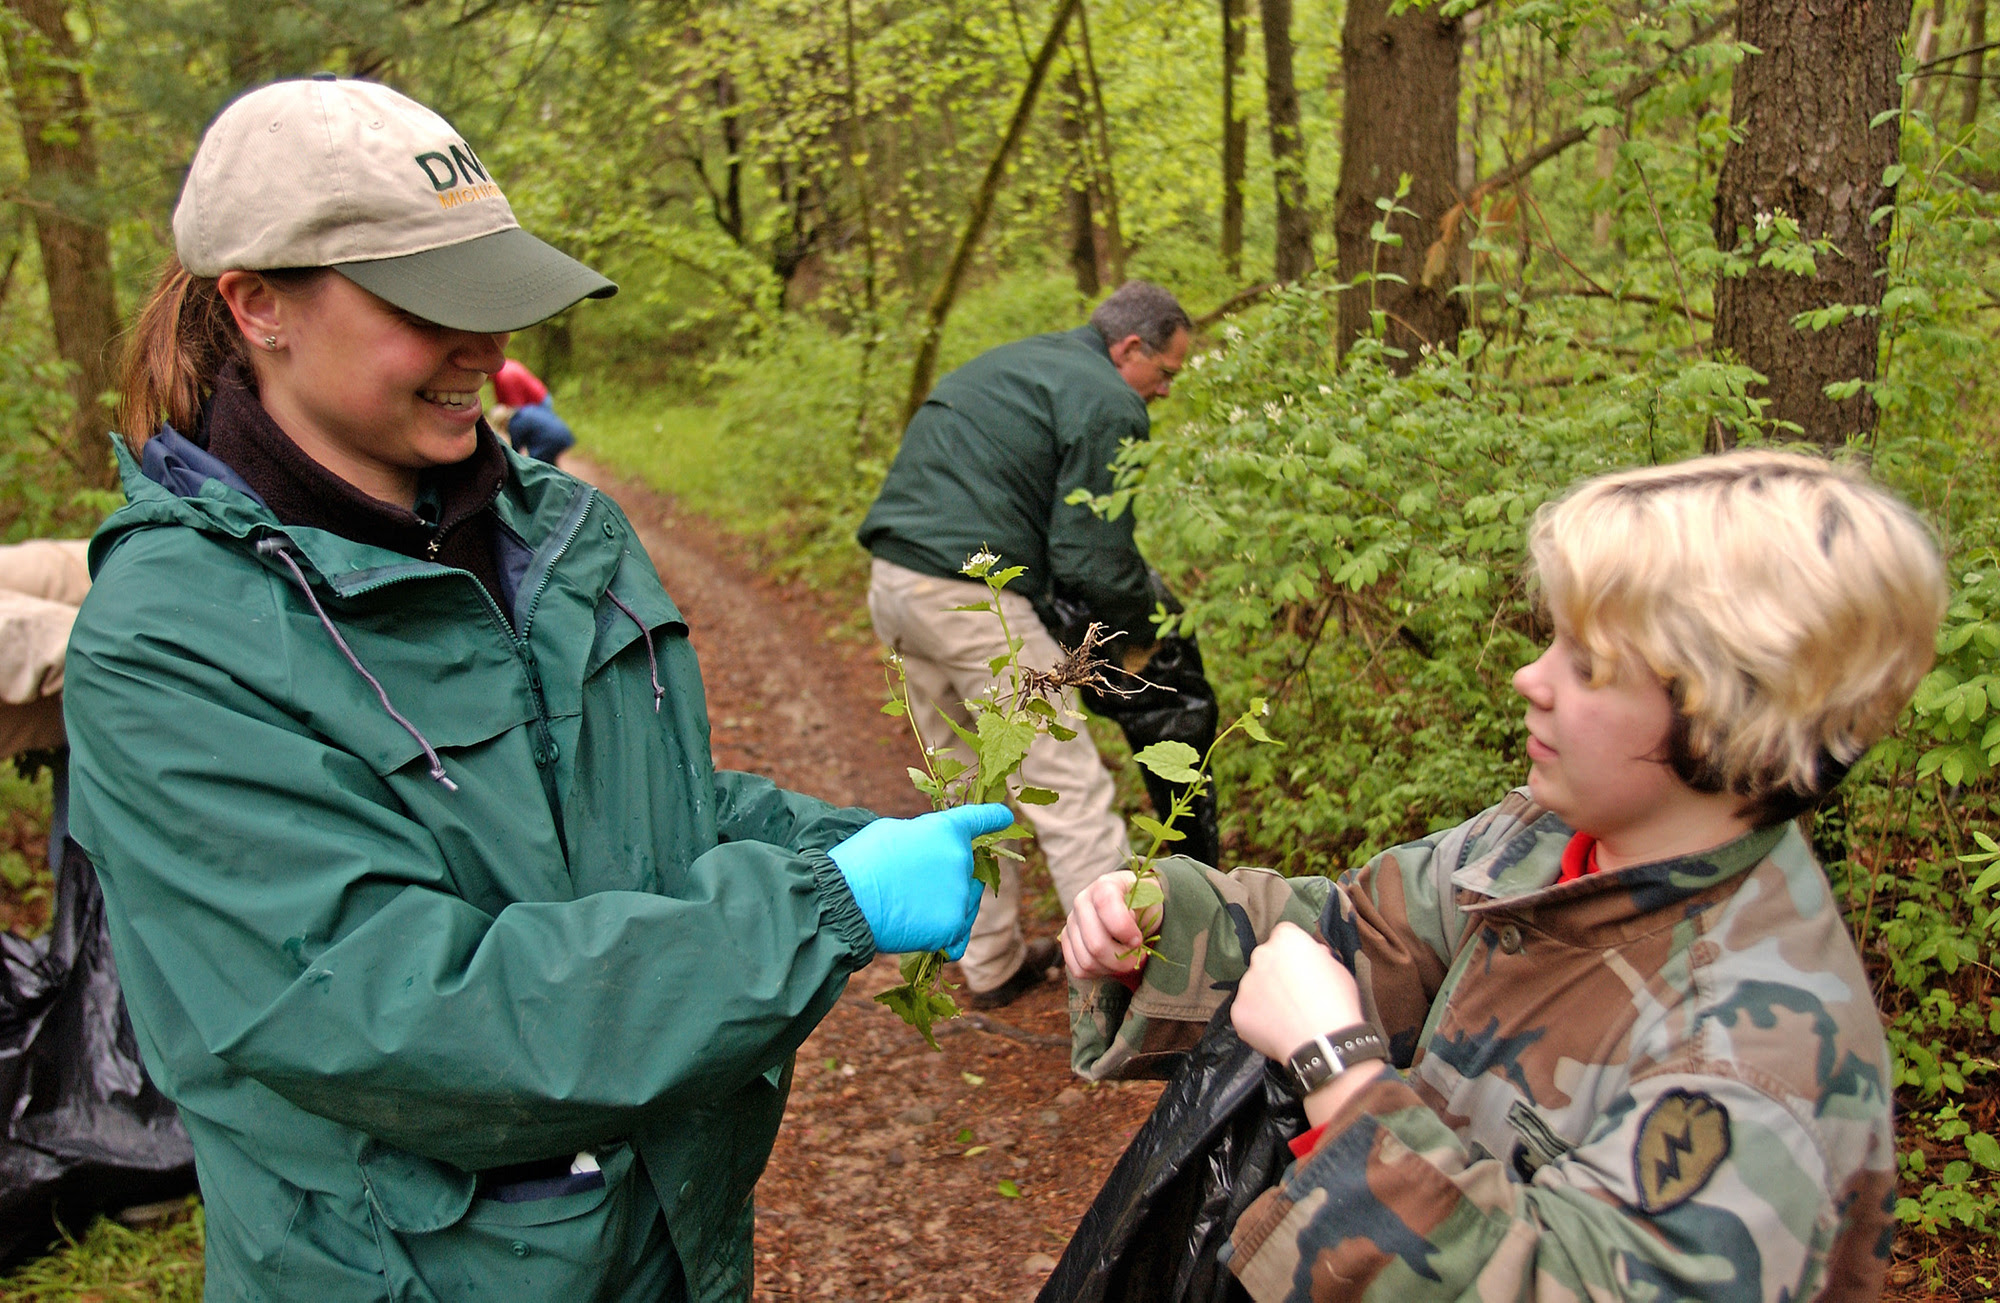 Volunteers engaged in invasive plant removal at the Bald Mountain Recreation Area, near Lake Orion, Michigan.